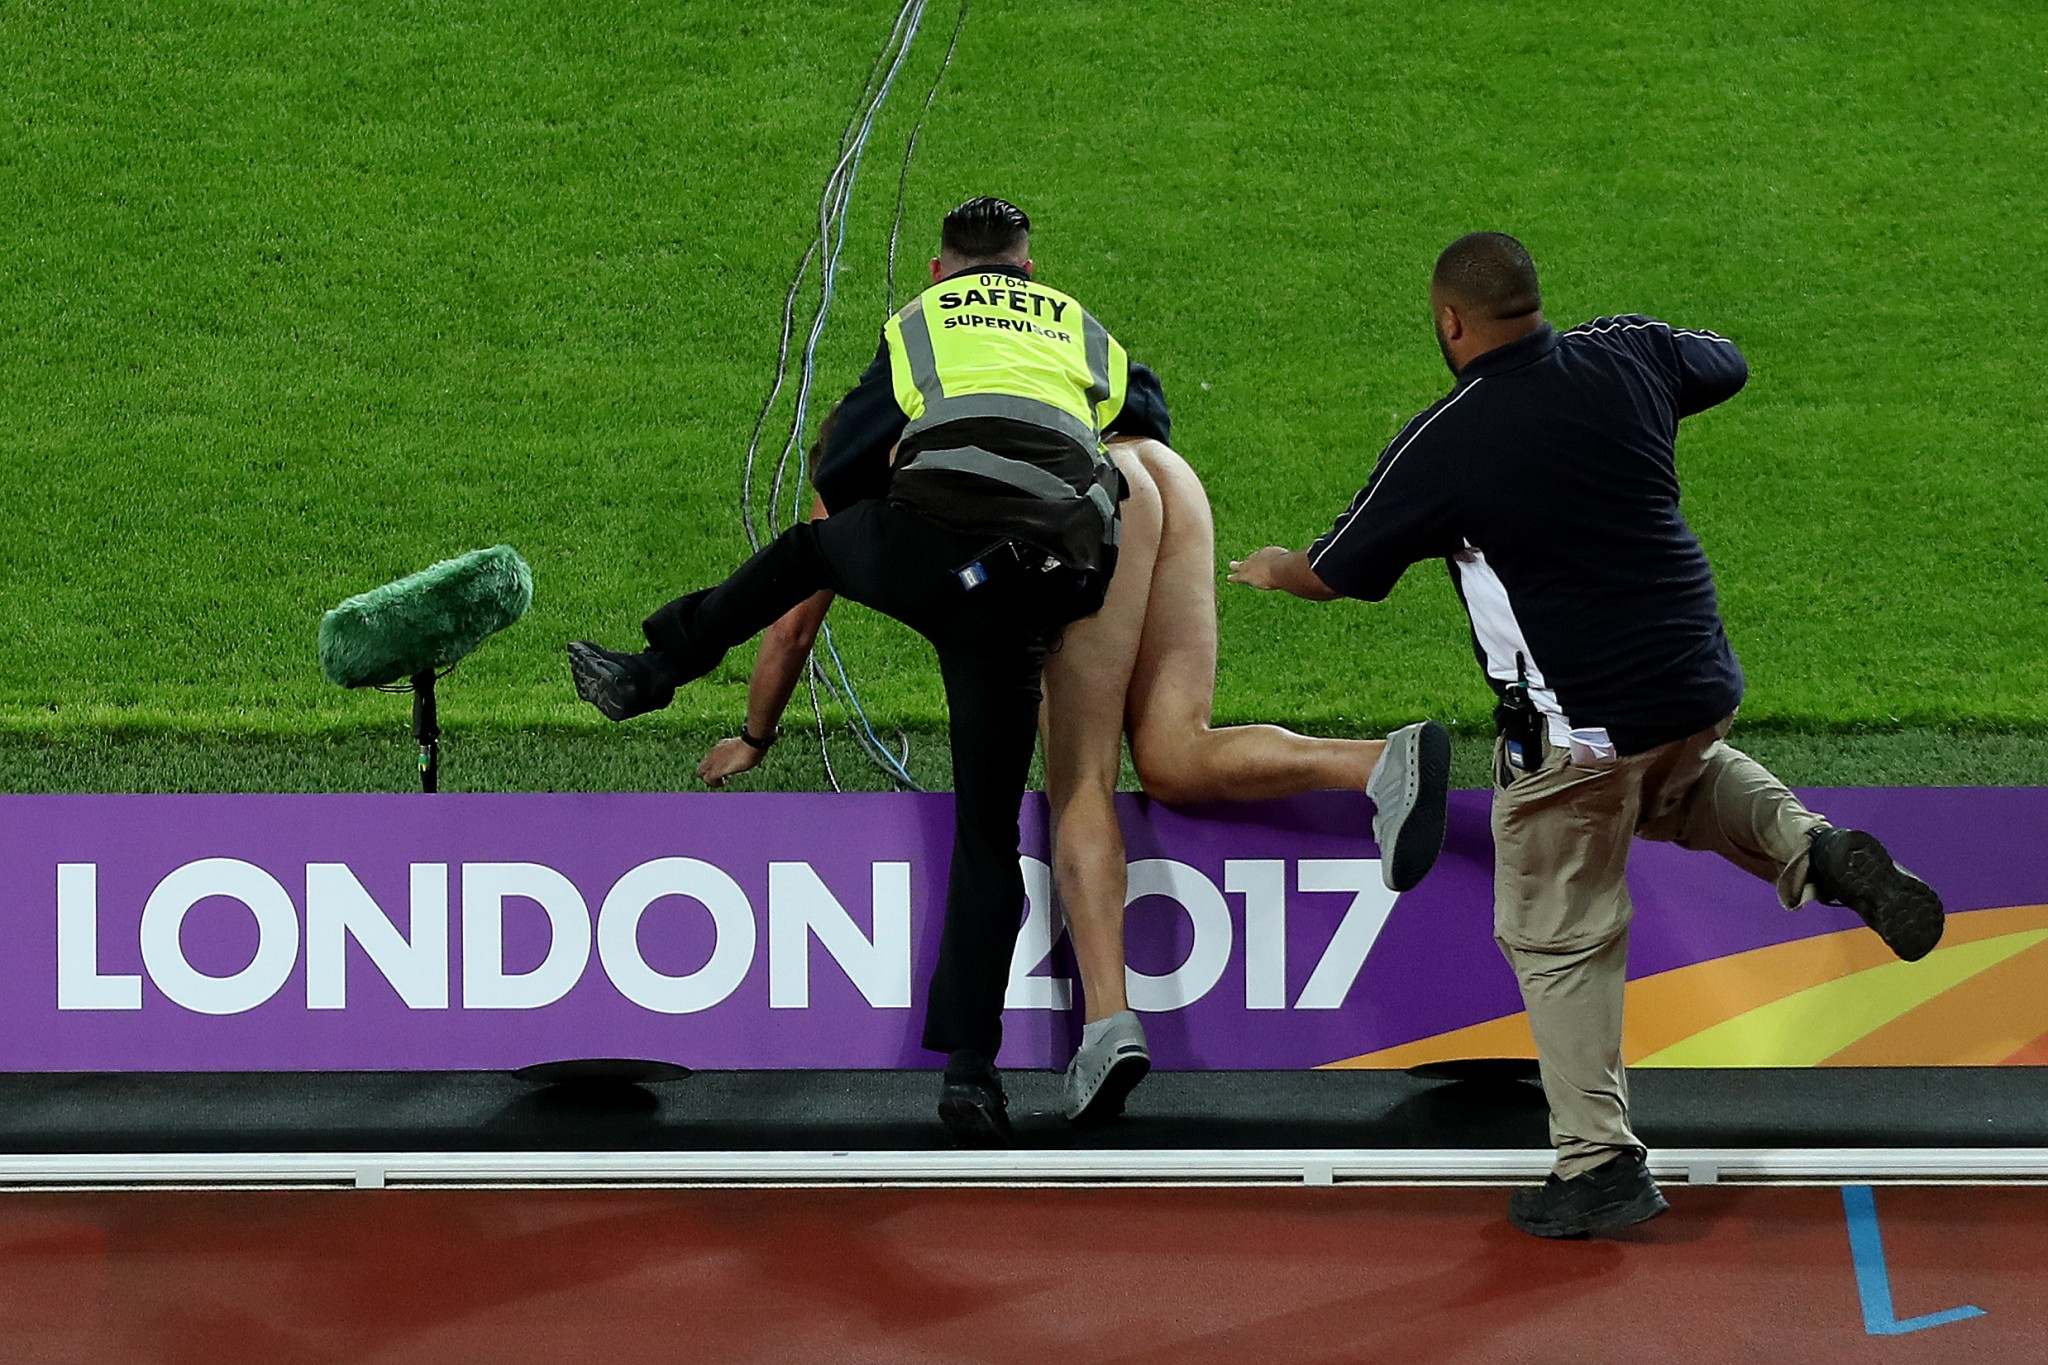 The streaker initially sidestepped lumbering security before being tackled and restrained ©Getty Images